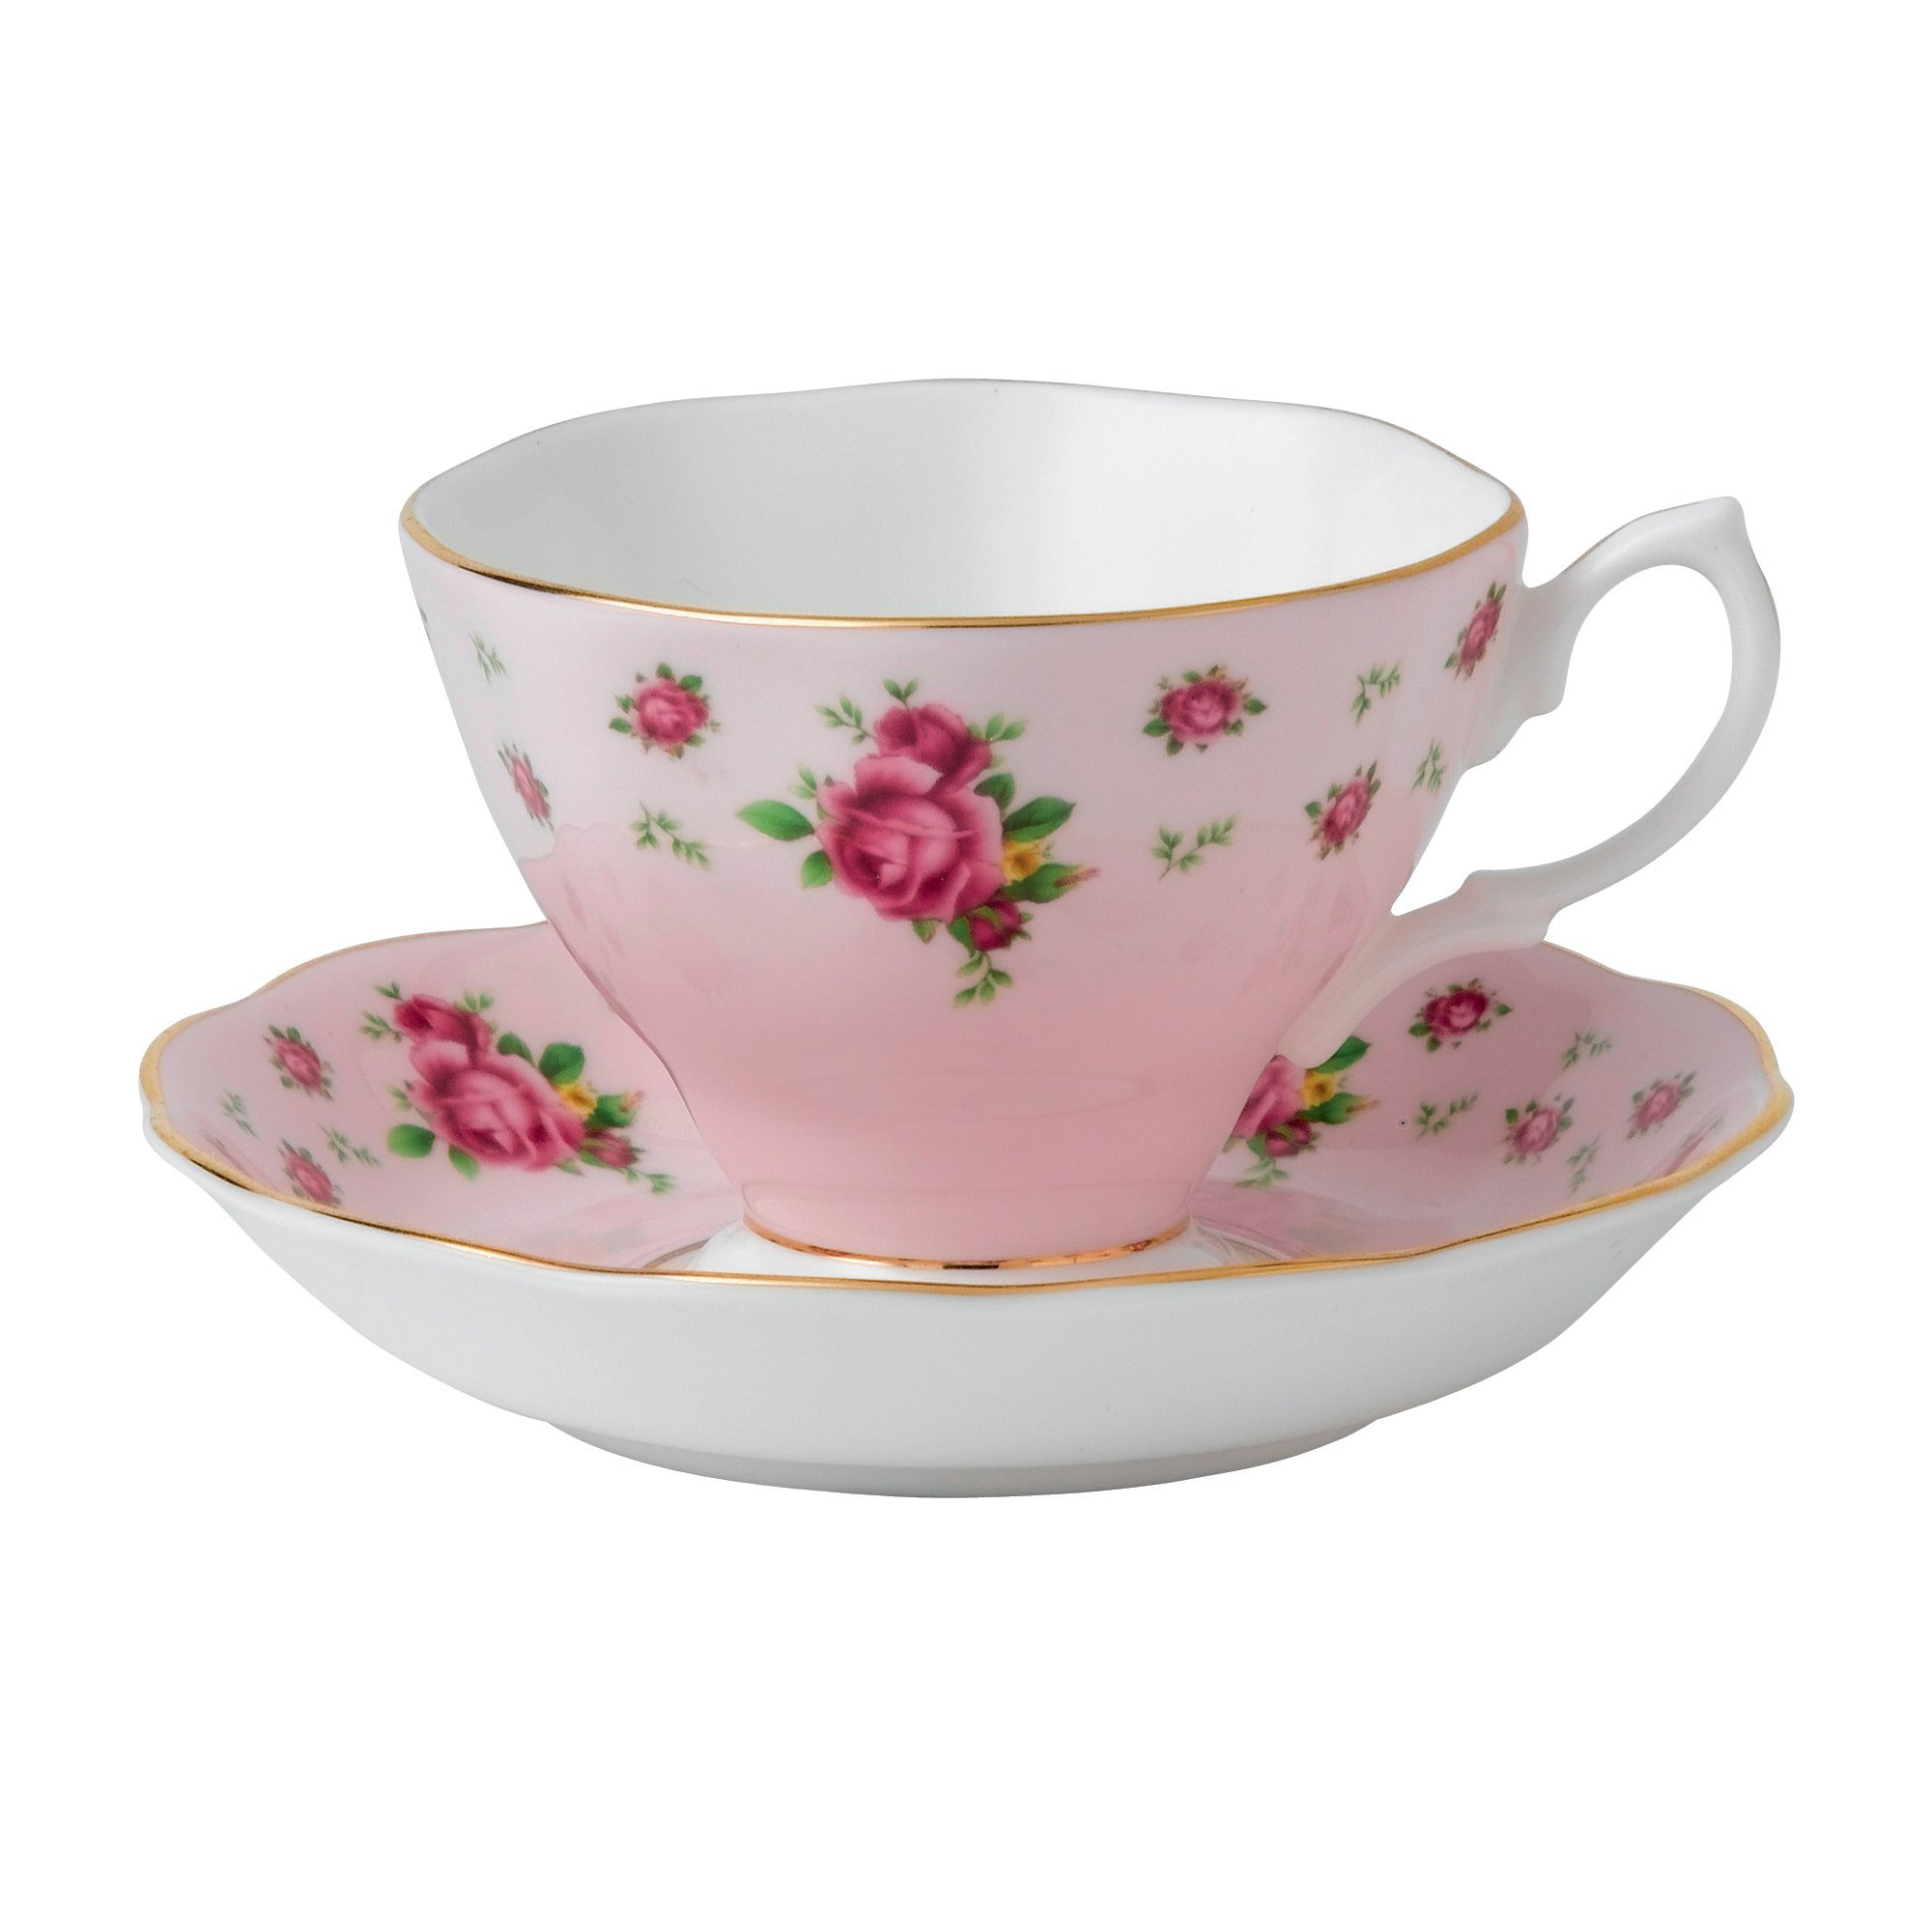 Royal Albert 8703026135 New Country Roses Formal Vintage Boxed Teacup and Saucer Set, Pink